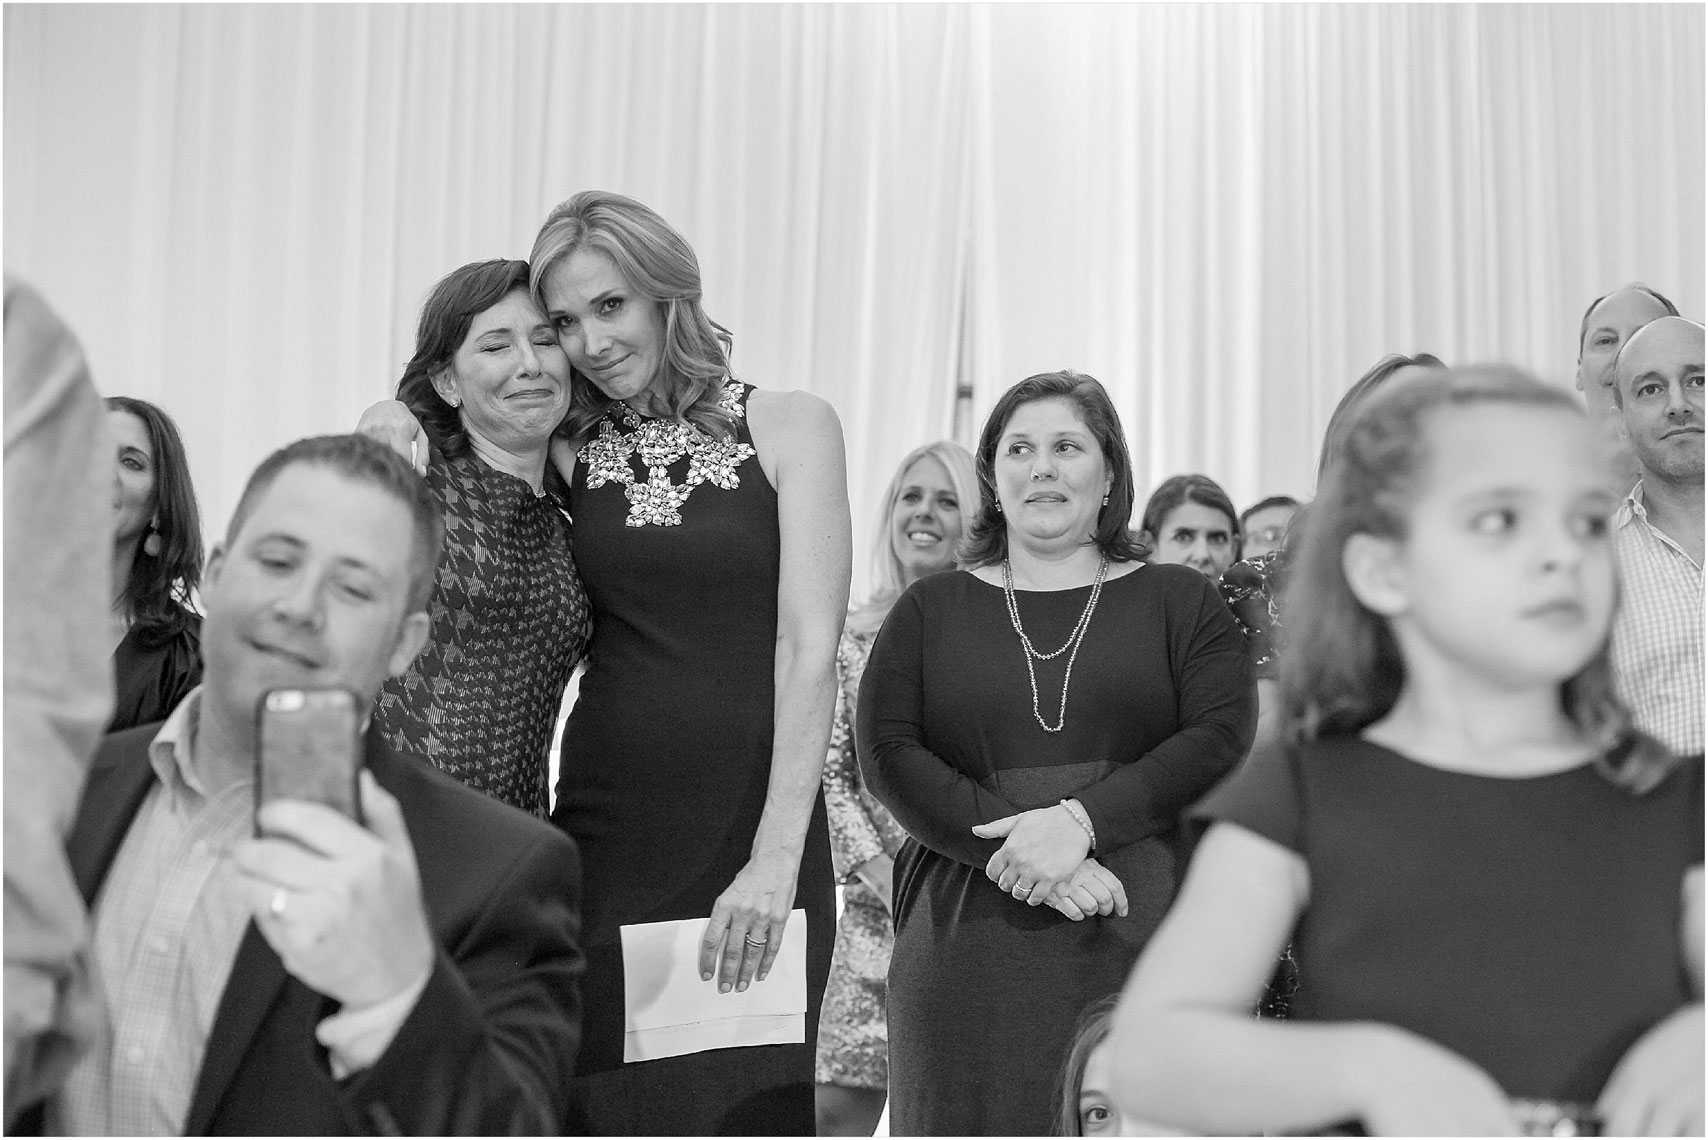 151003-2555_WEB-mitzvah-photography